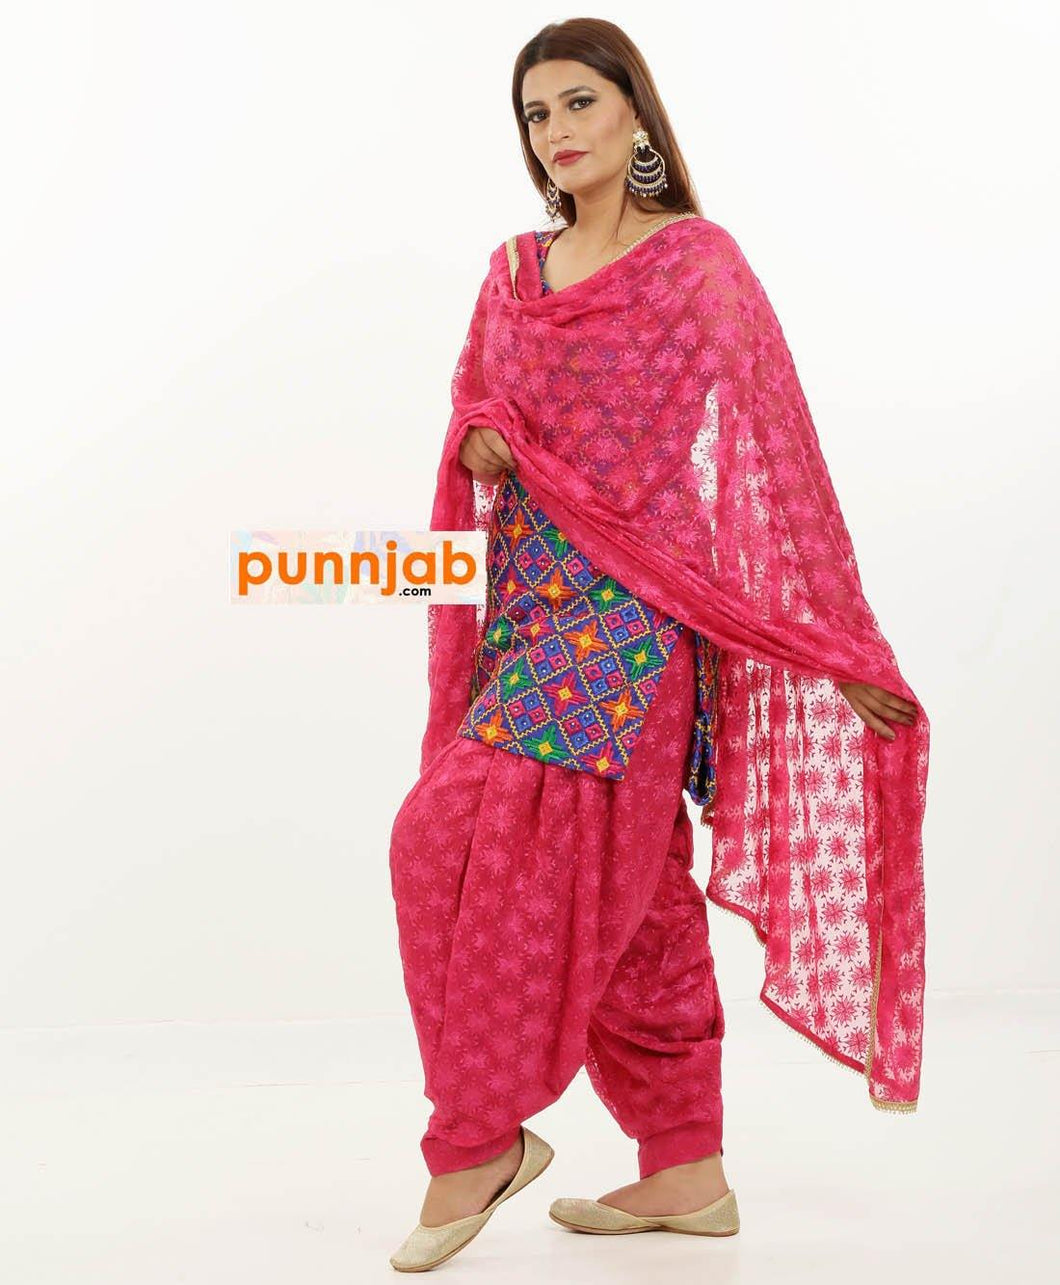 Superstar Suit - Punnjab Phulkari